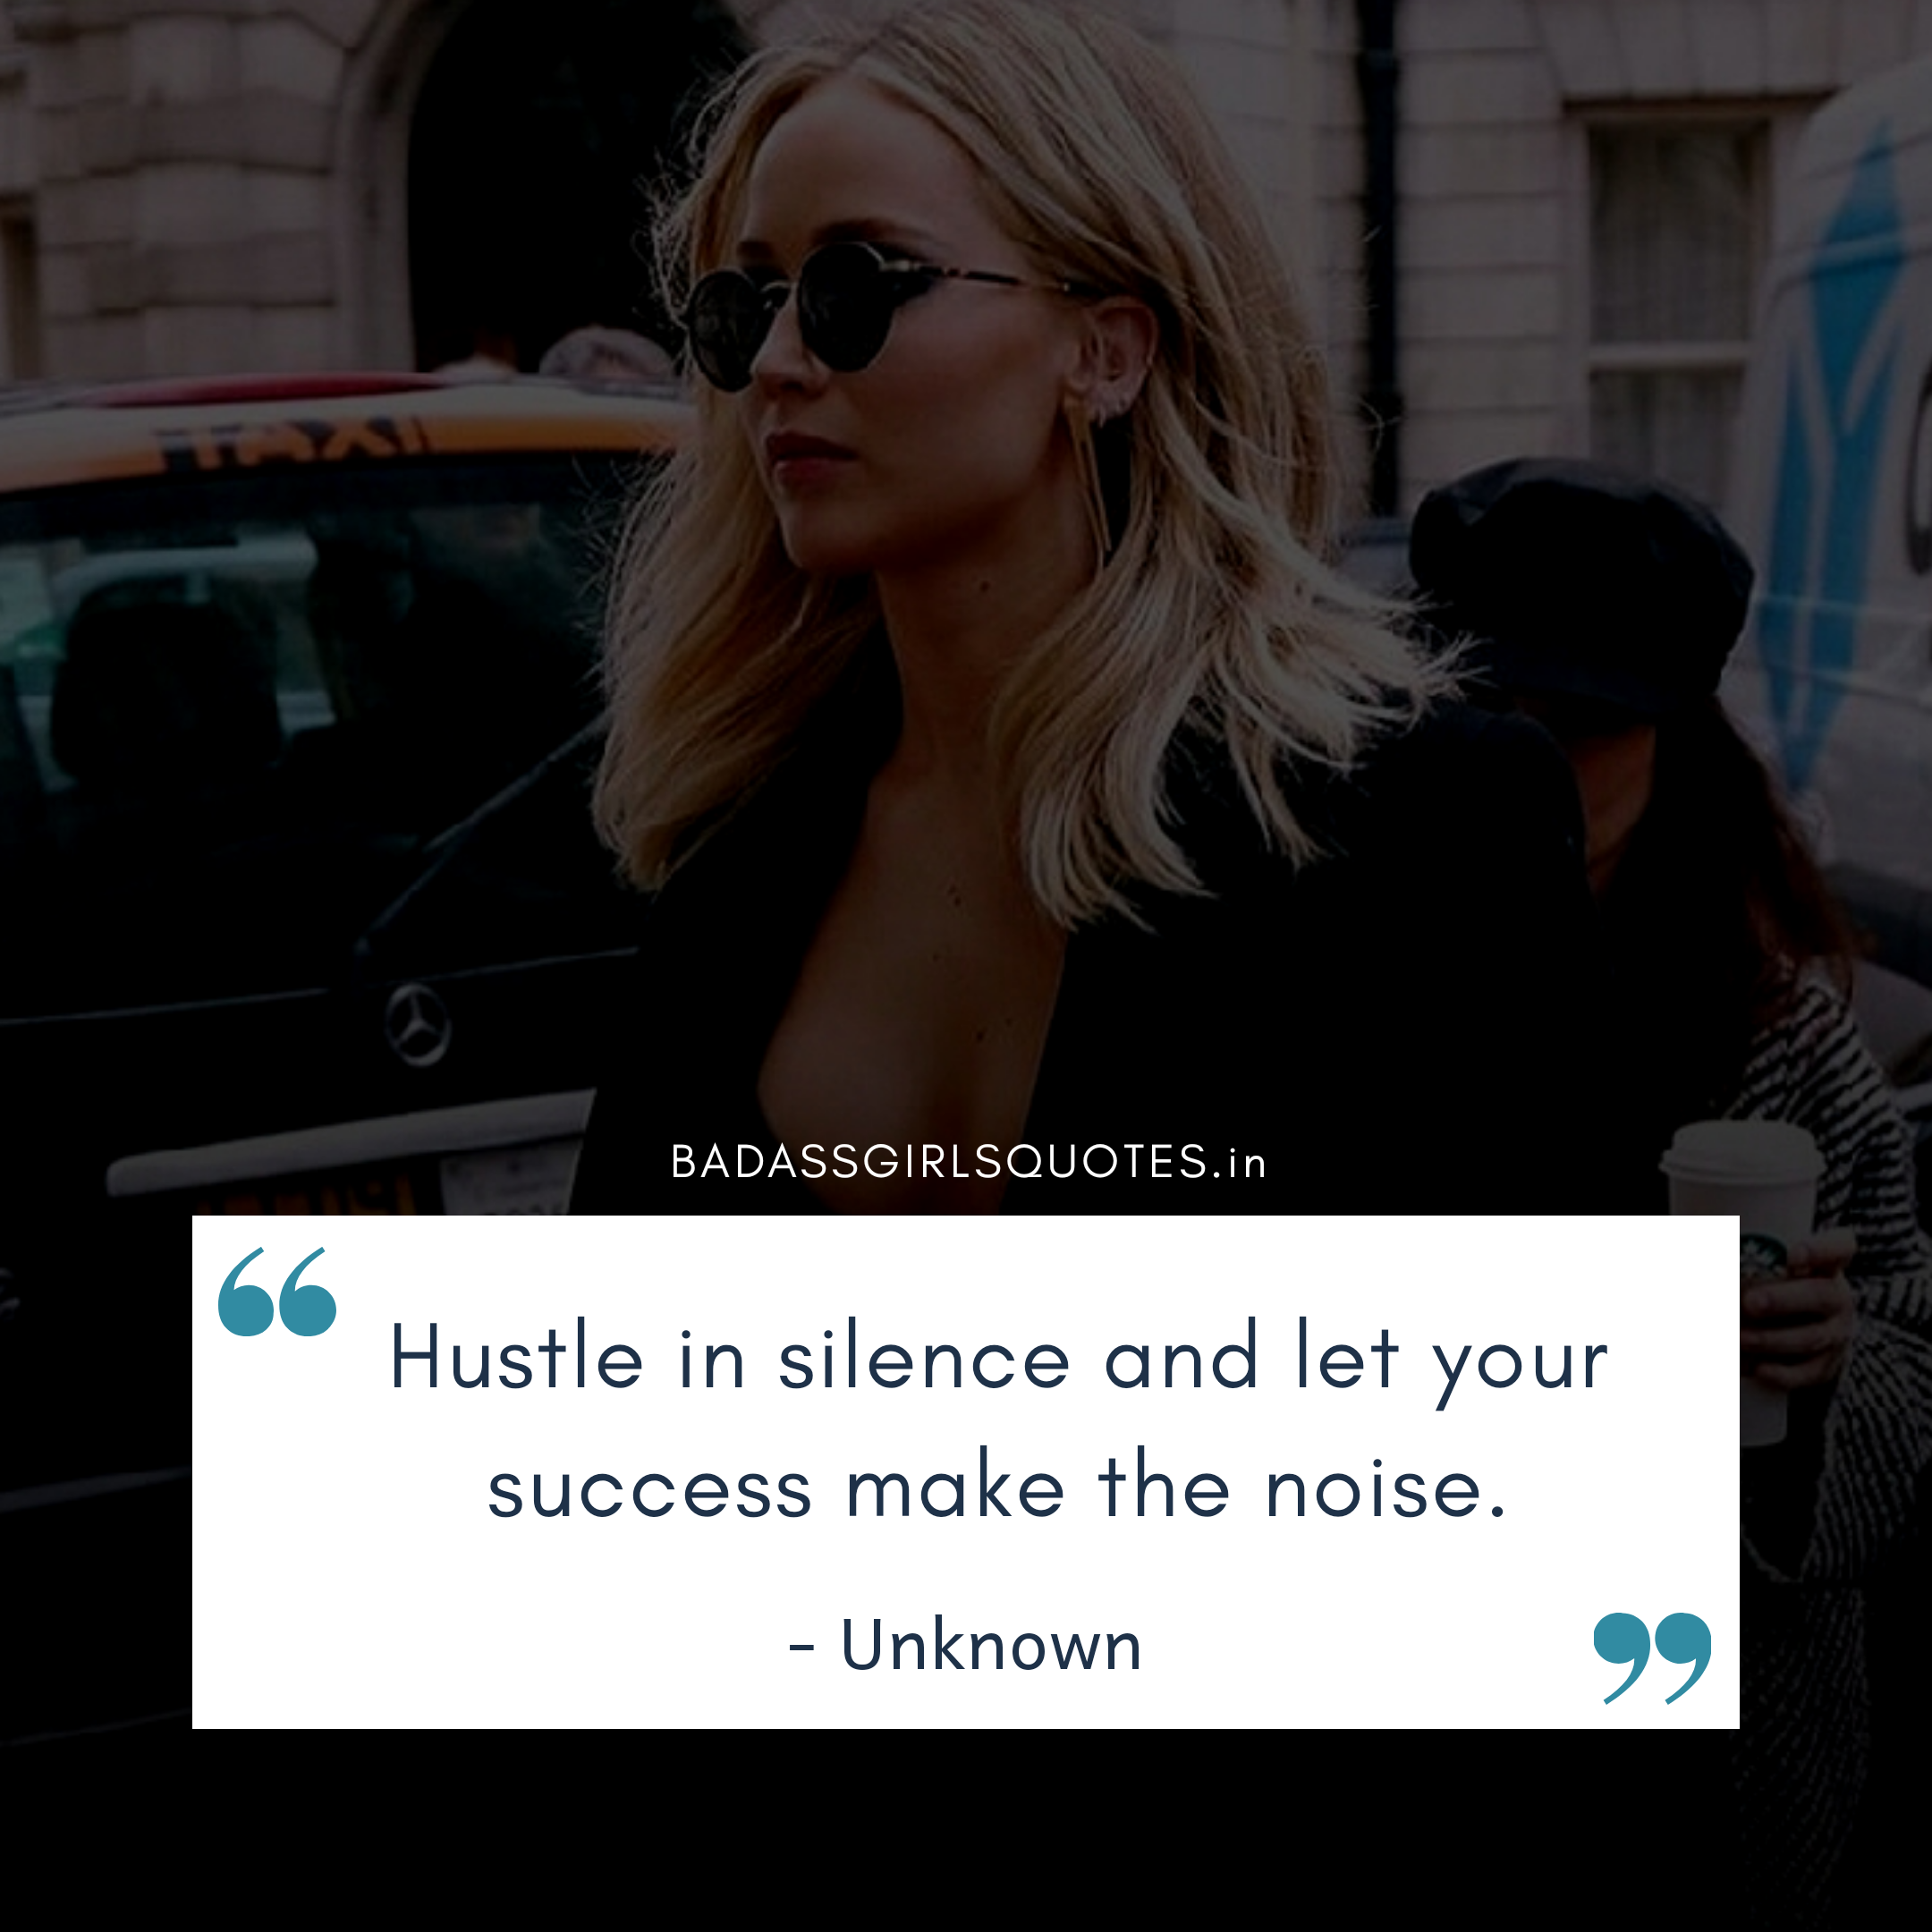 Hustle Quotes,Motivational quotes, Badass quotes, BadassGirlsQuotes, Quotes for girls, Girly Quotes, success quotes, Best Quotes, Girly Quote, Hustle